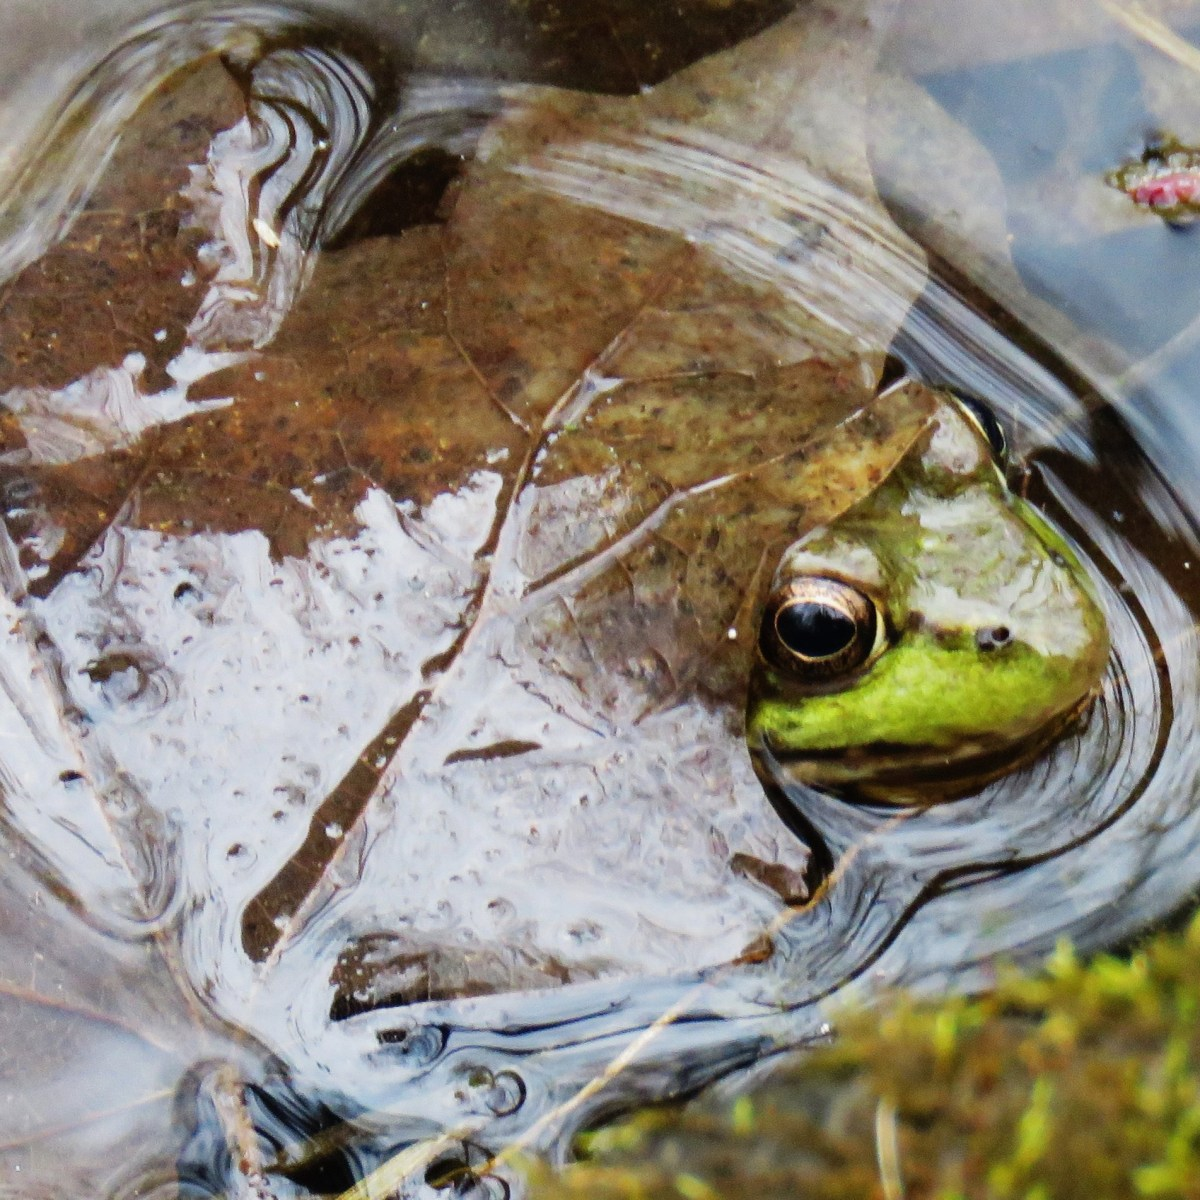 A frog's head peeks out from under a leaf in the water